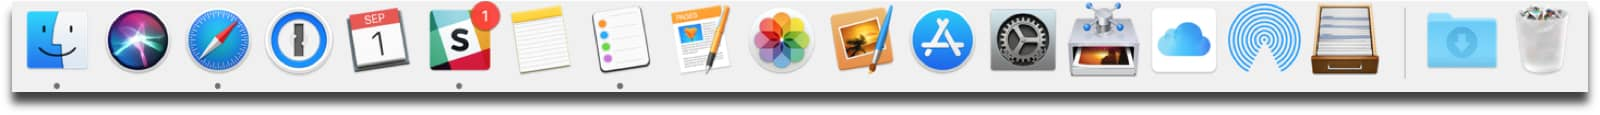 iCloud Drive icon and others in the dock.